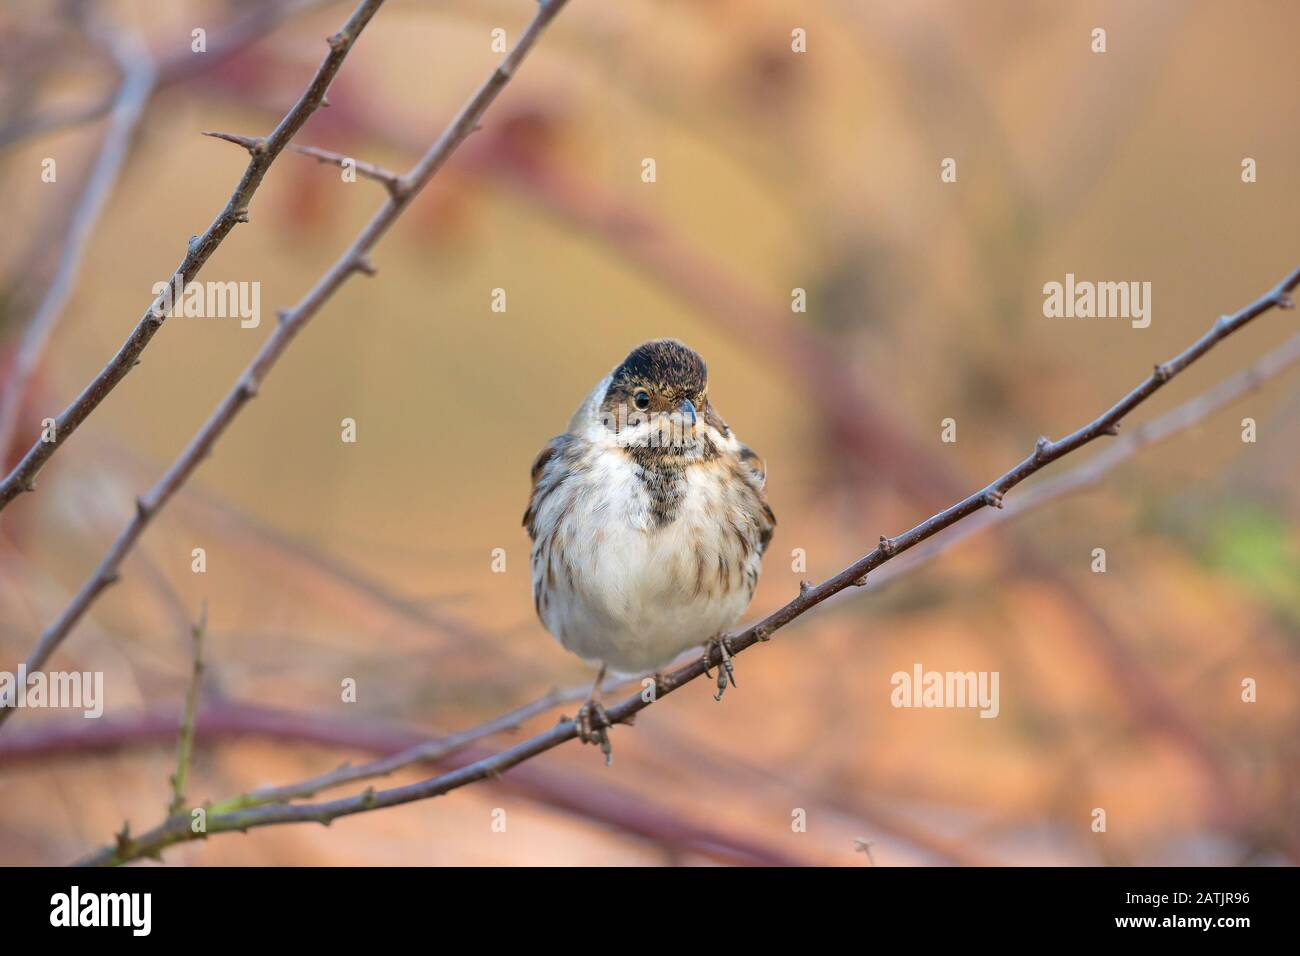 Front View Close Up Of Wild Male Uk Reed Bunting Bird Emberiza Schoeniclus In Winter Plumage Isolated Outdoors Perching On Branch British Birds Stock Photo Alamy